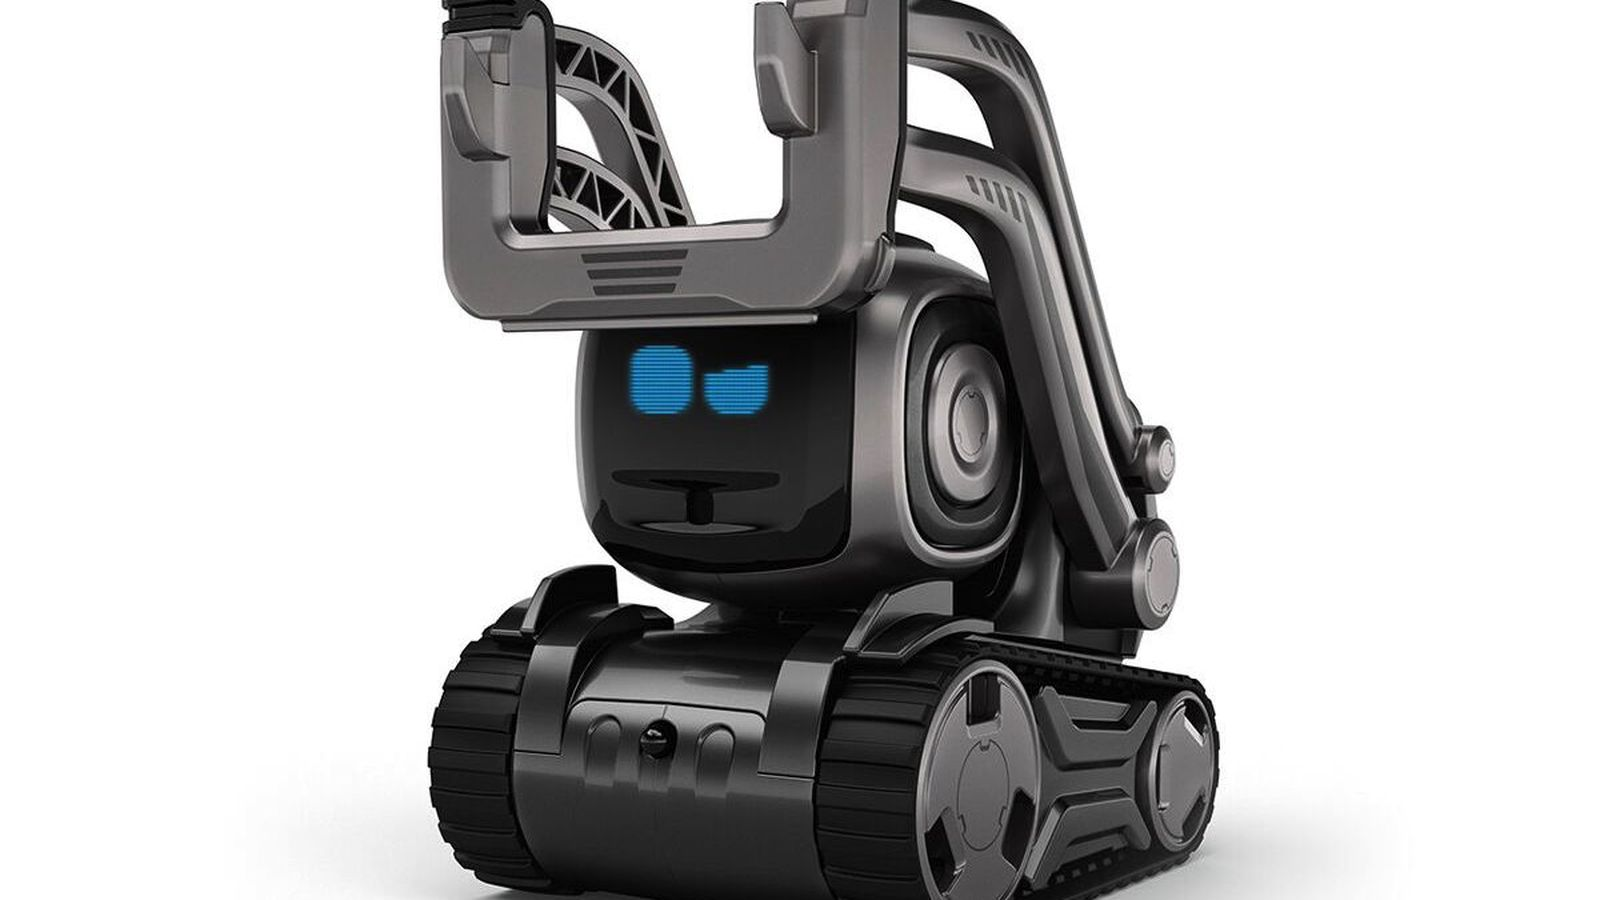 Anki U2019s Limited Edition Dark Cozmo Seems Like A Metaphor